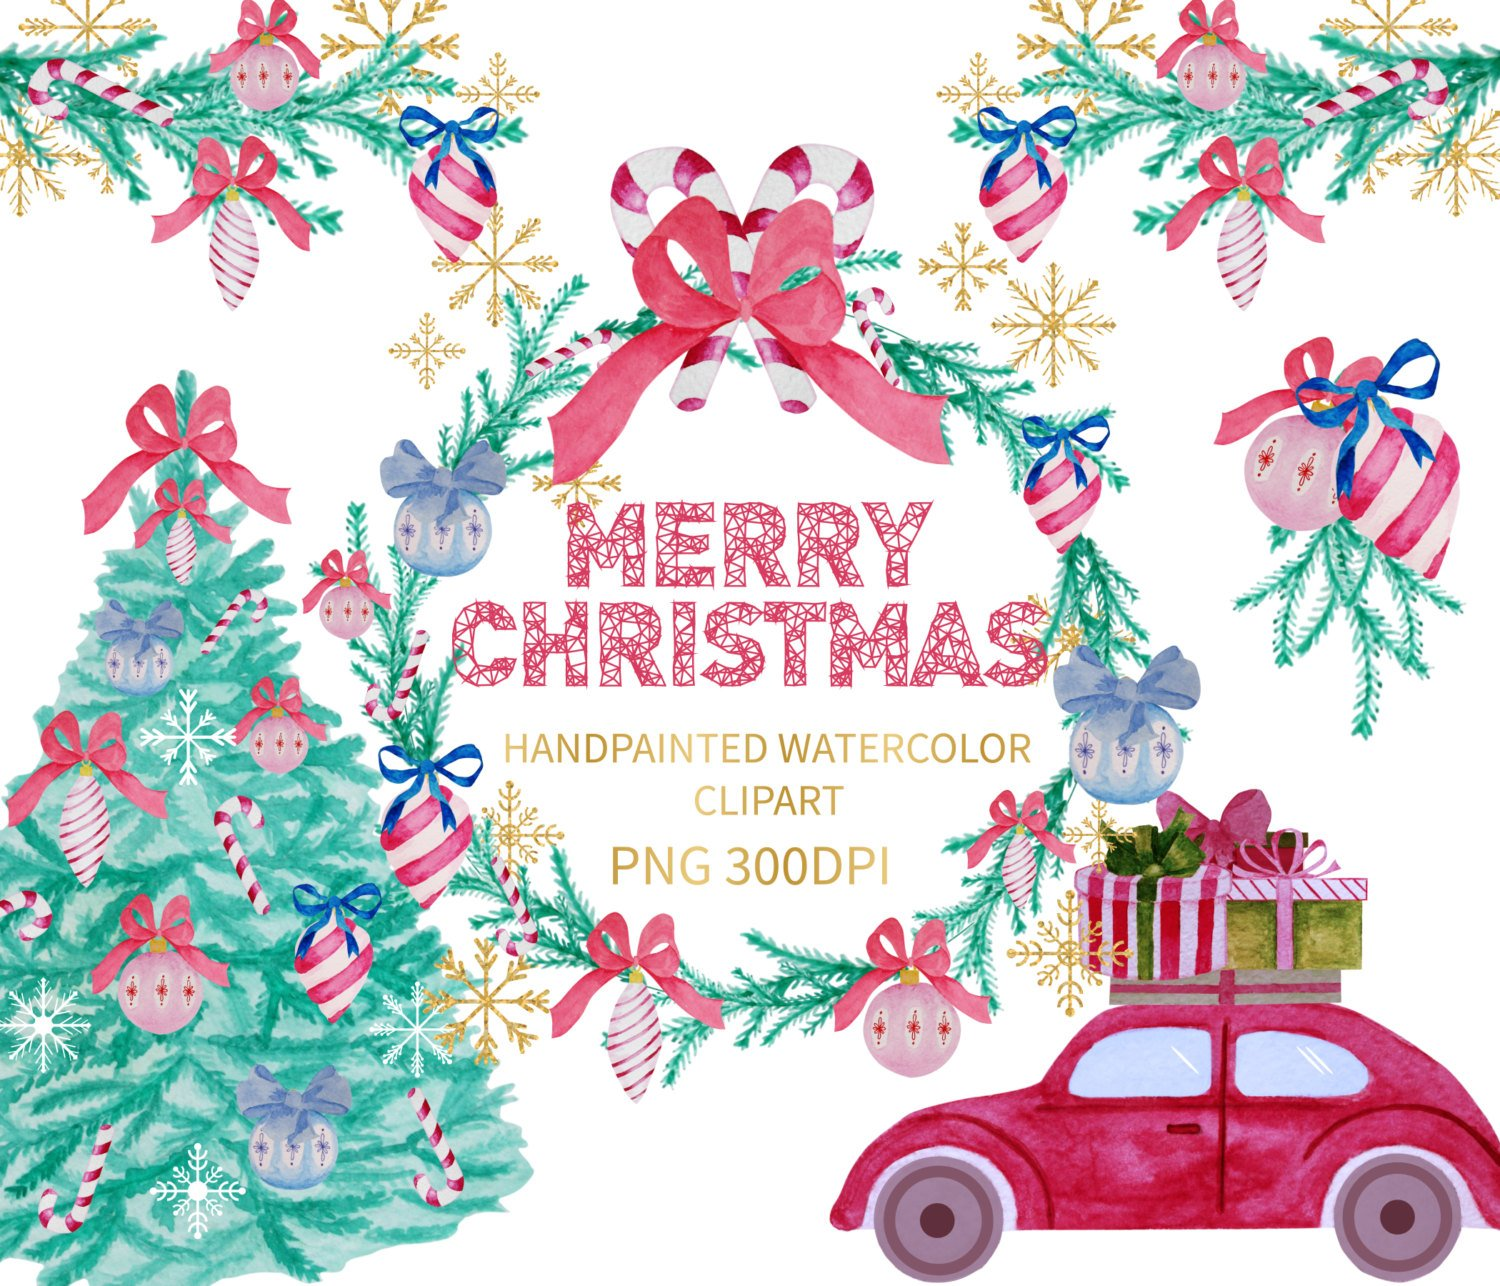 1500x1286 Christmas Watercolor Clipart Watercolor Clipart Xmas Etsy